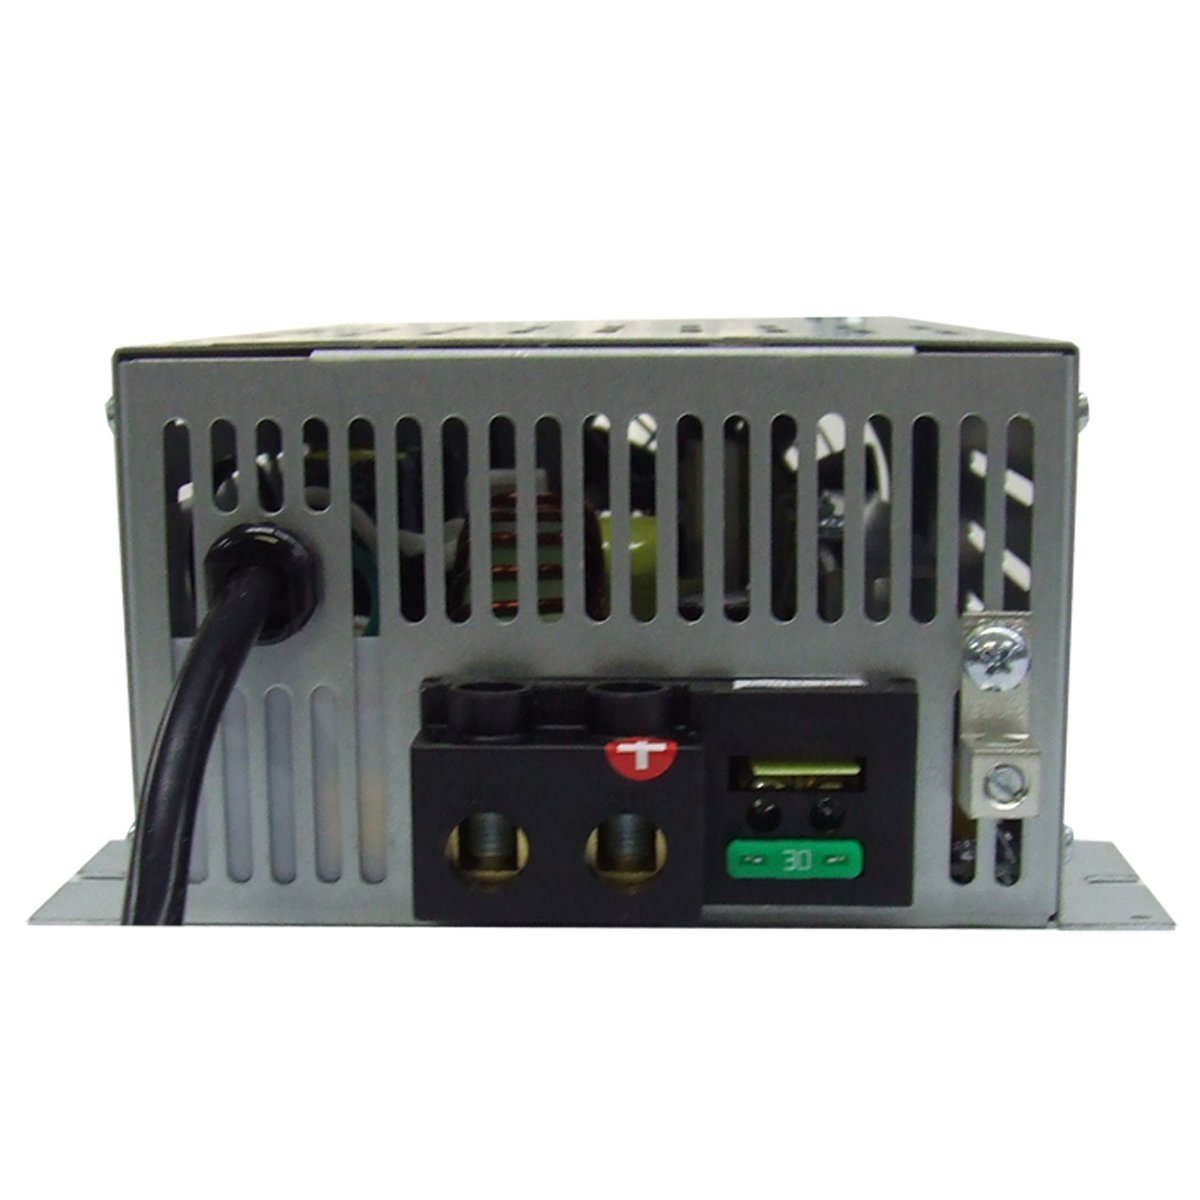 DuraComm DPS-30 Power Source Utilities with Low Noise Supply by DuraComm (Image #3)